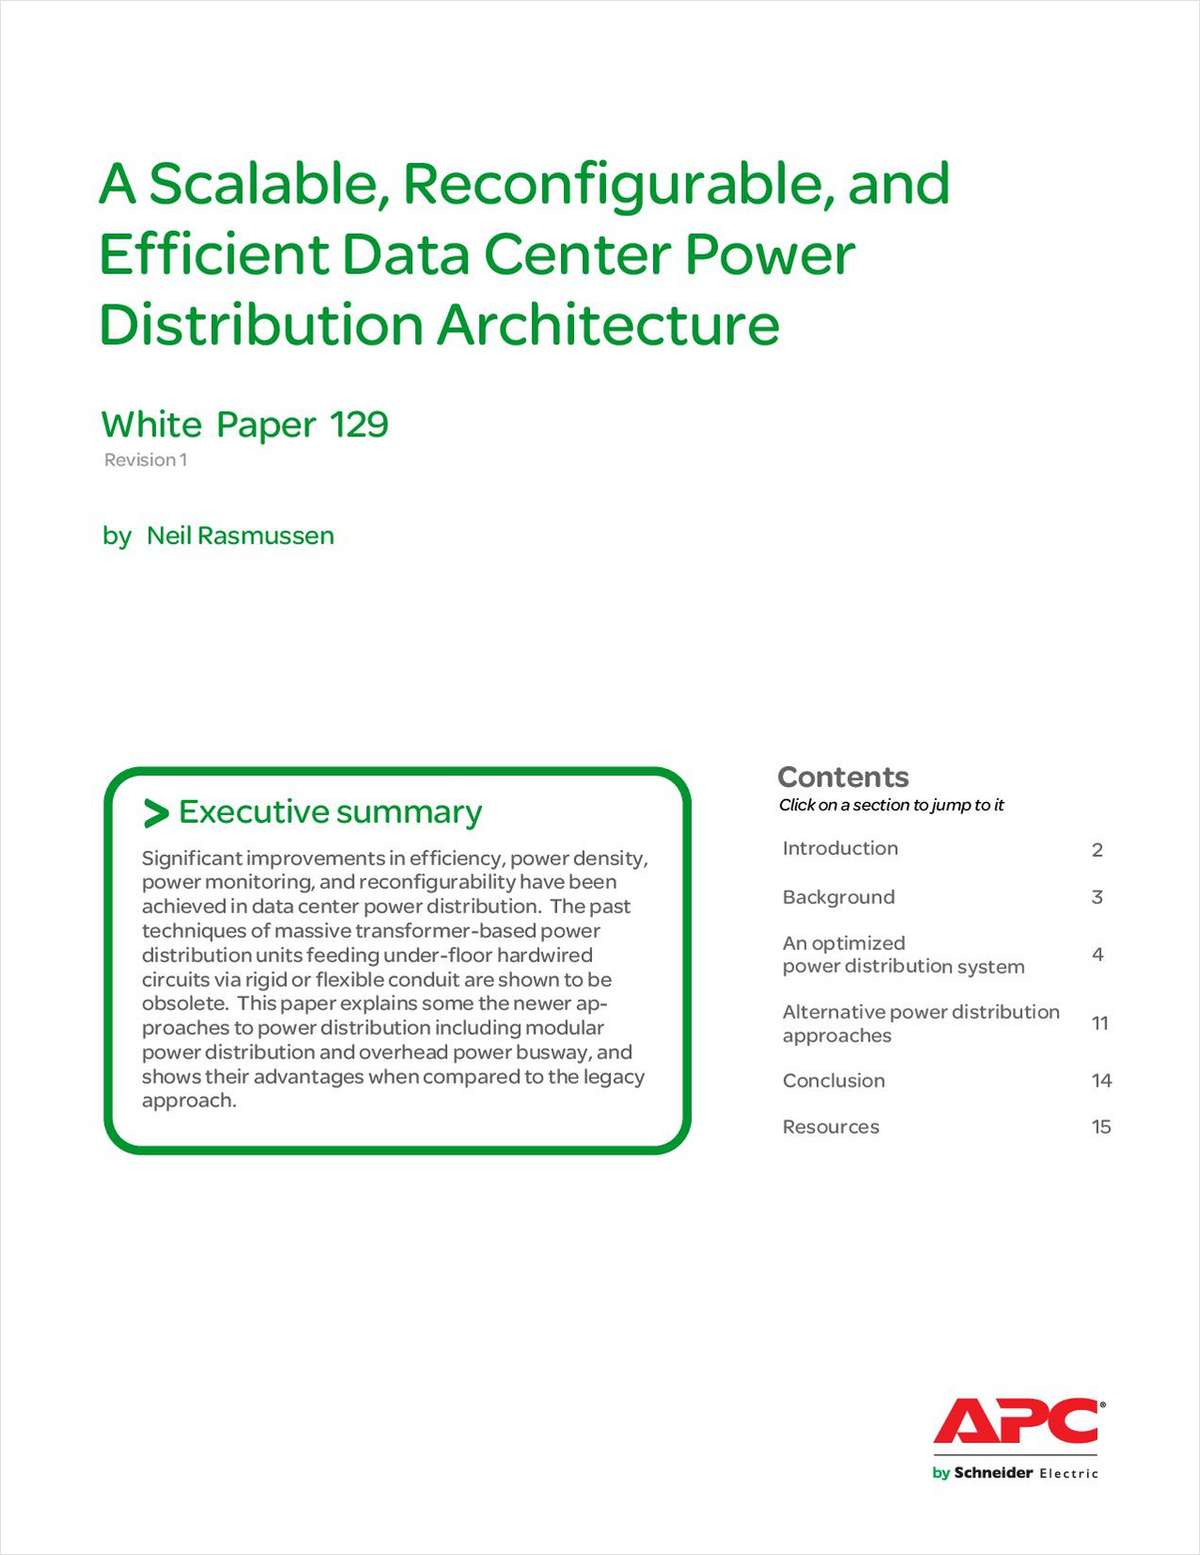 A Scalable, Reconfigurable, and Efficient Data Center Power Distribution Architecture